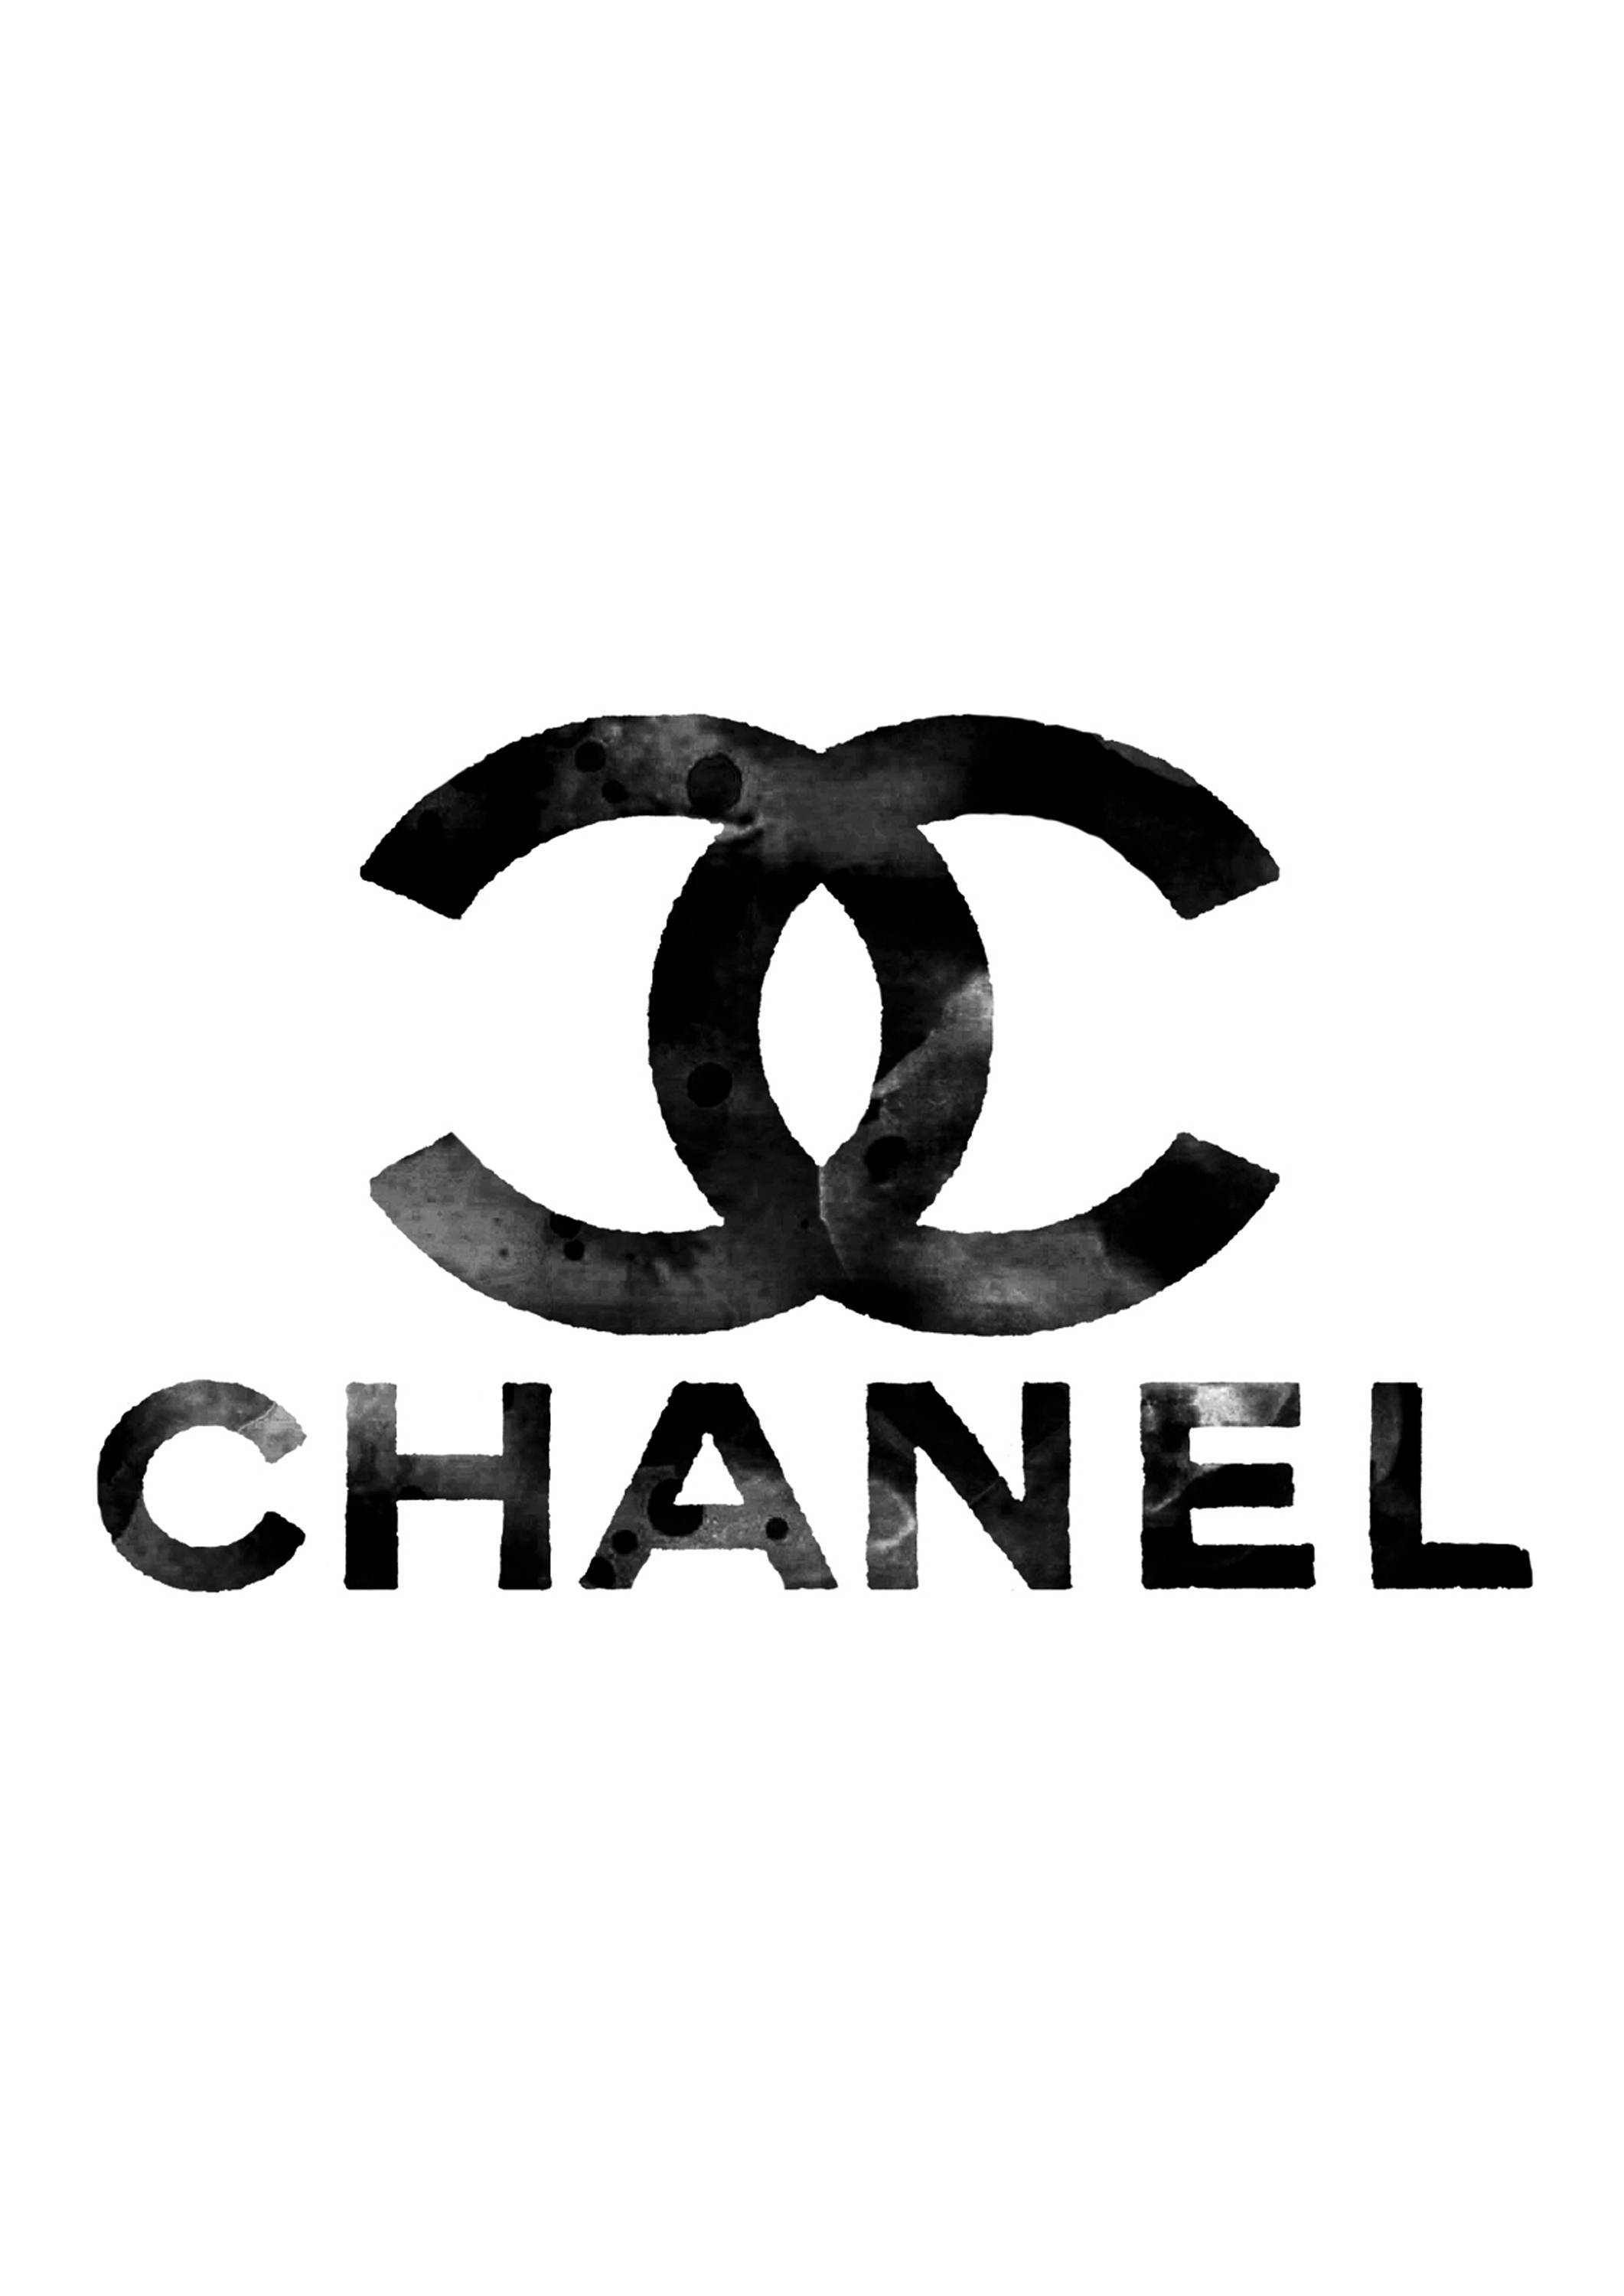 Chanel Logo Art Print Chanel Poster Chanel Warecolor Chanel Pertaining To Most Recently Released Chanel Wall Decor (View 21 of 25)